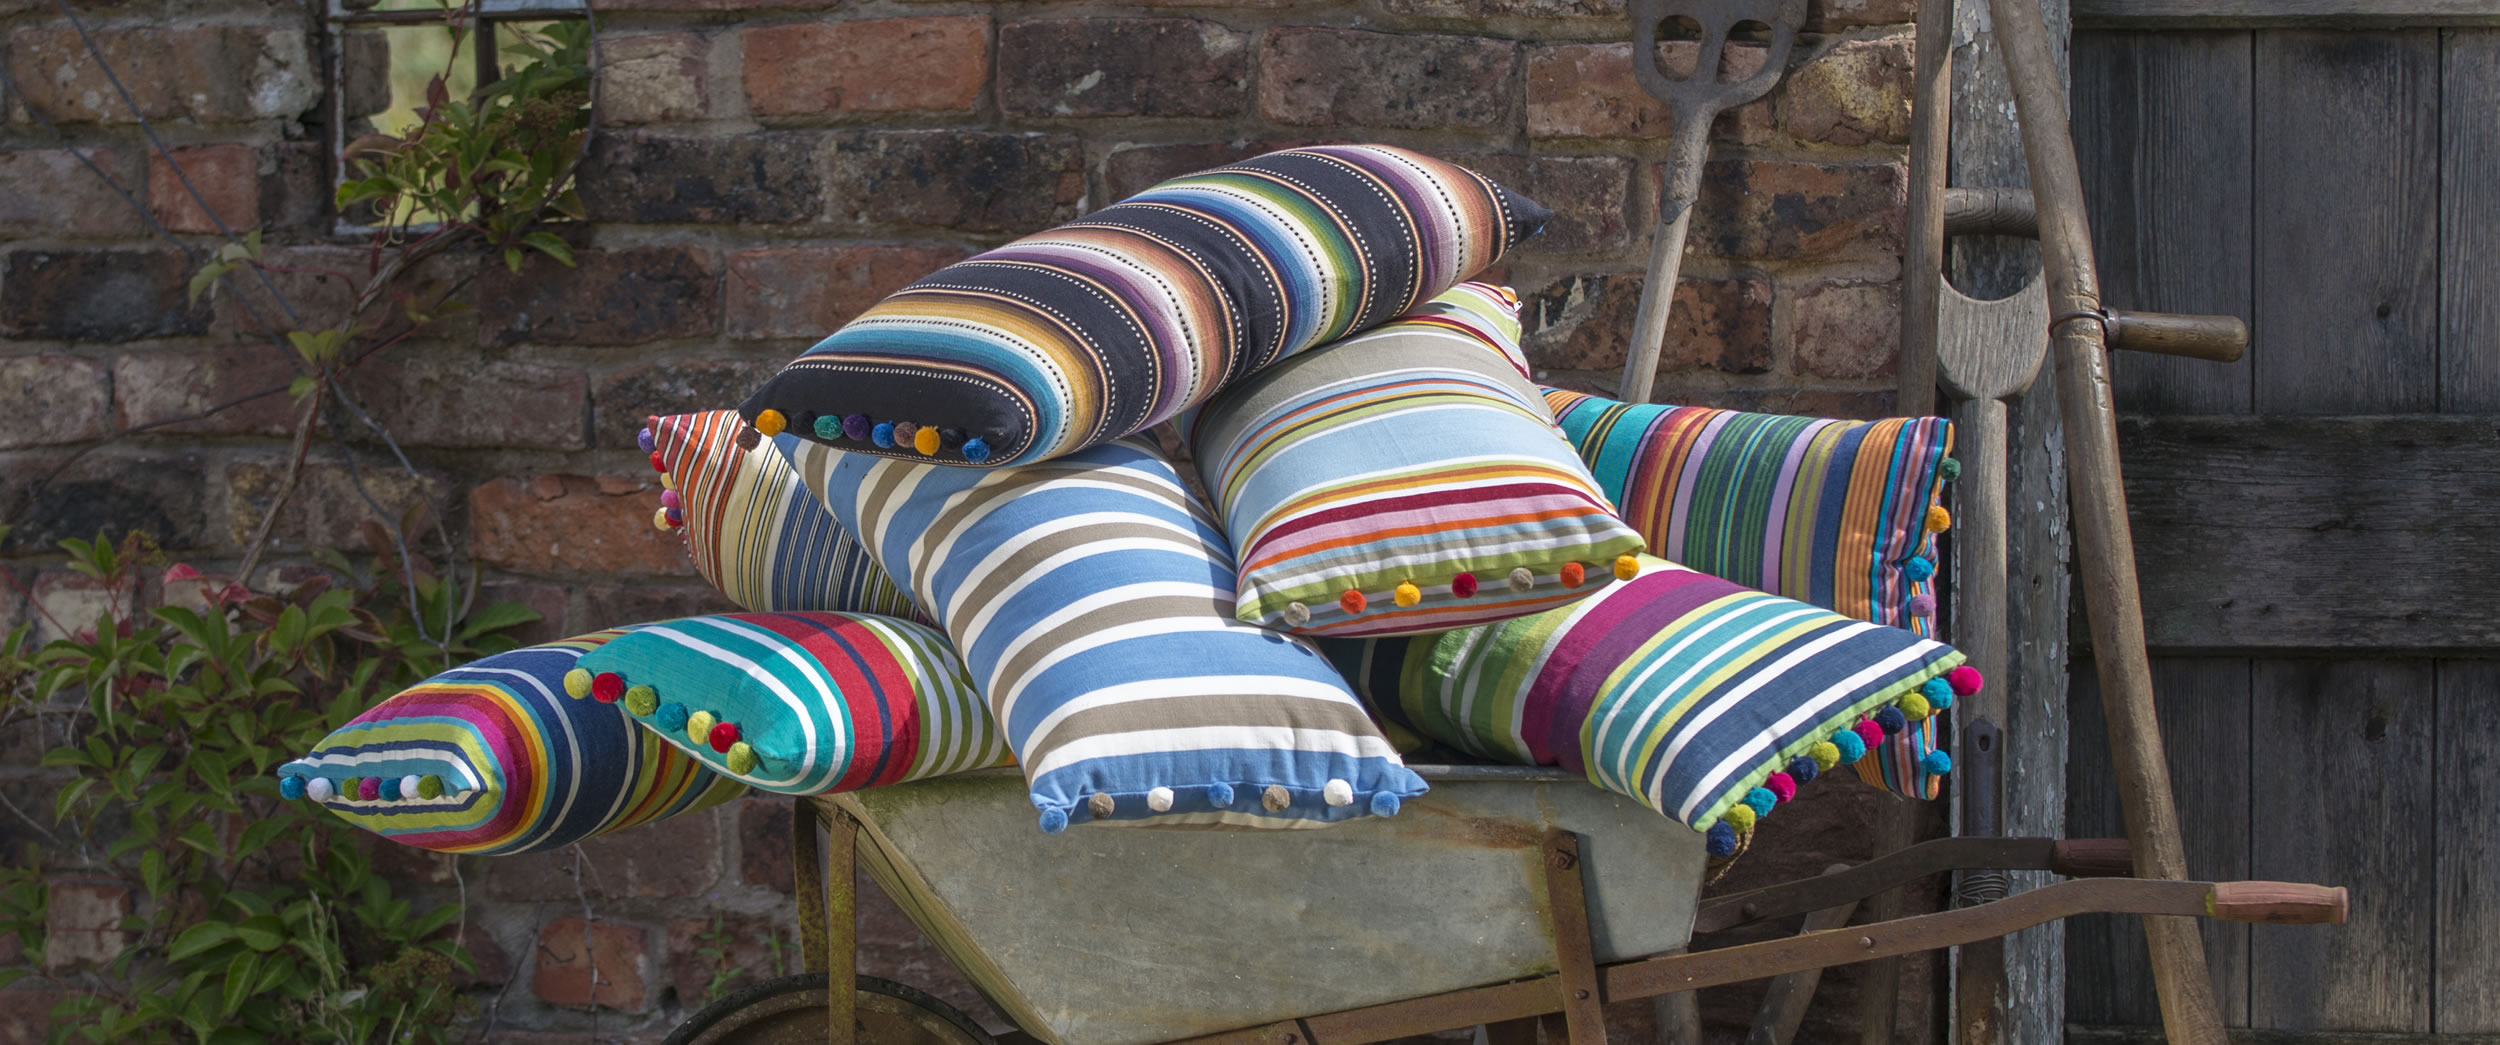 Black Turquoise White  Striped Oblong Cushions with Bobble Fringe  Sack Race Stripes